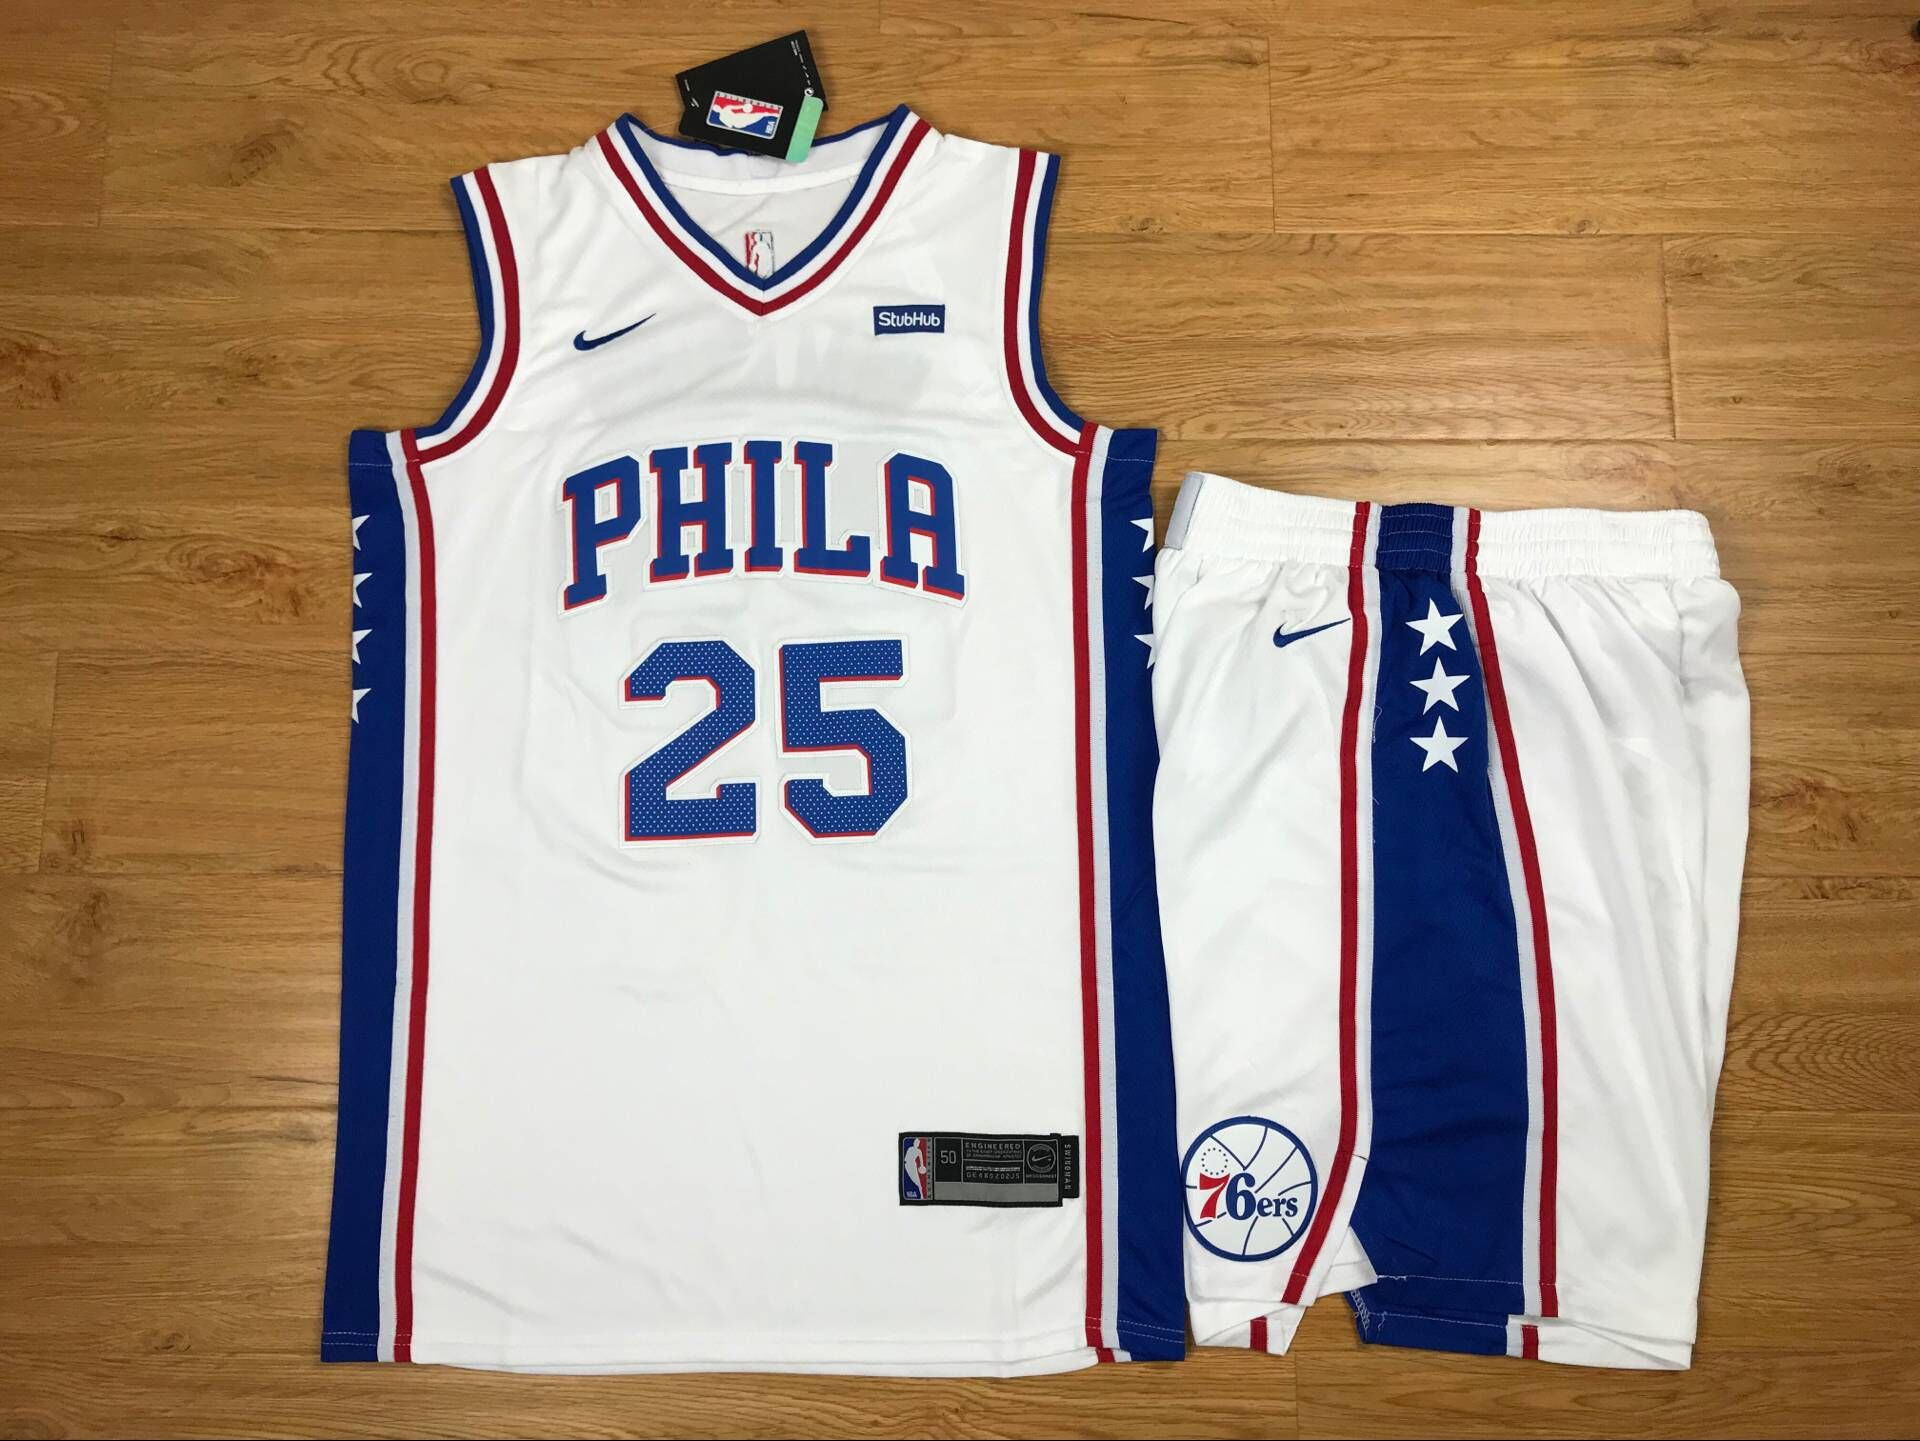 76ers 25 Ben Simmons White Nike Swingman Jersey(With Shorts)